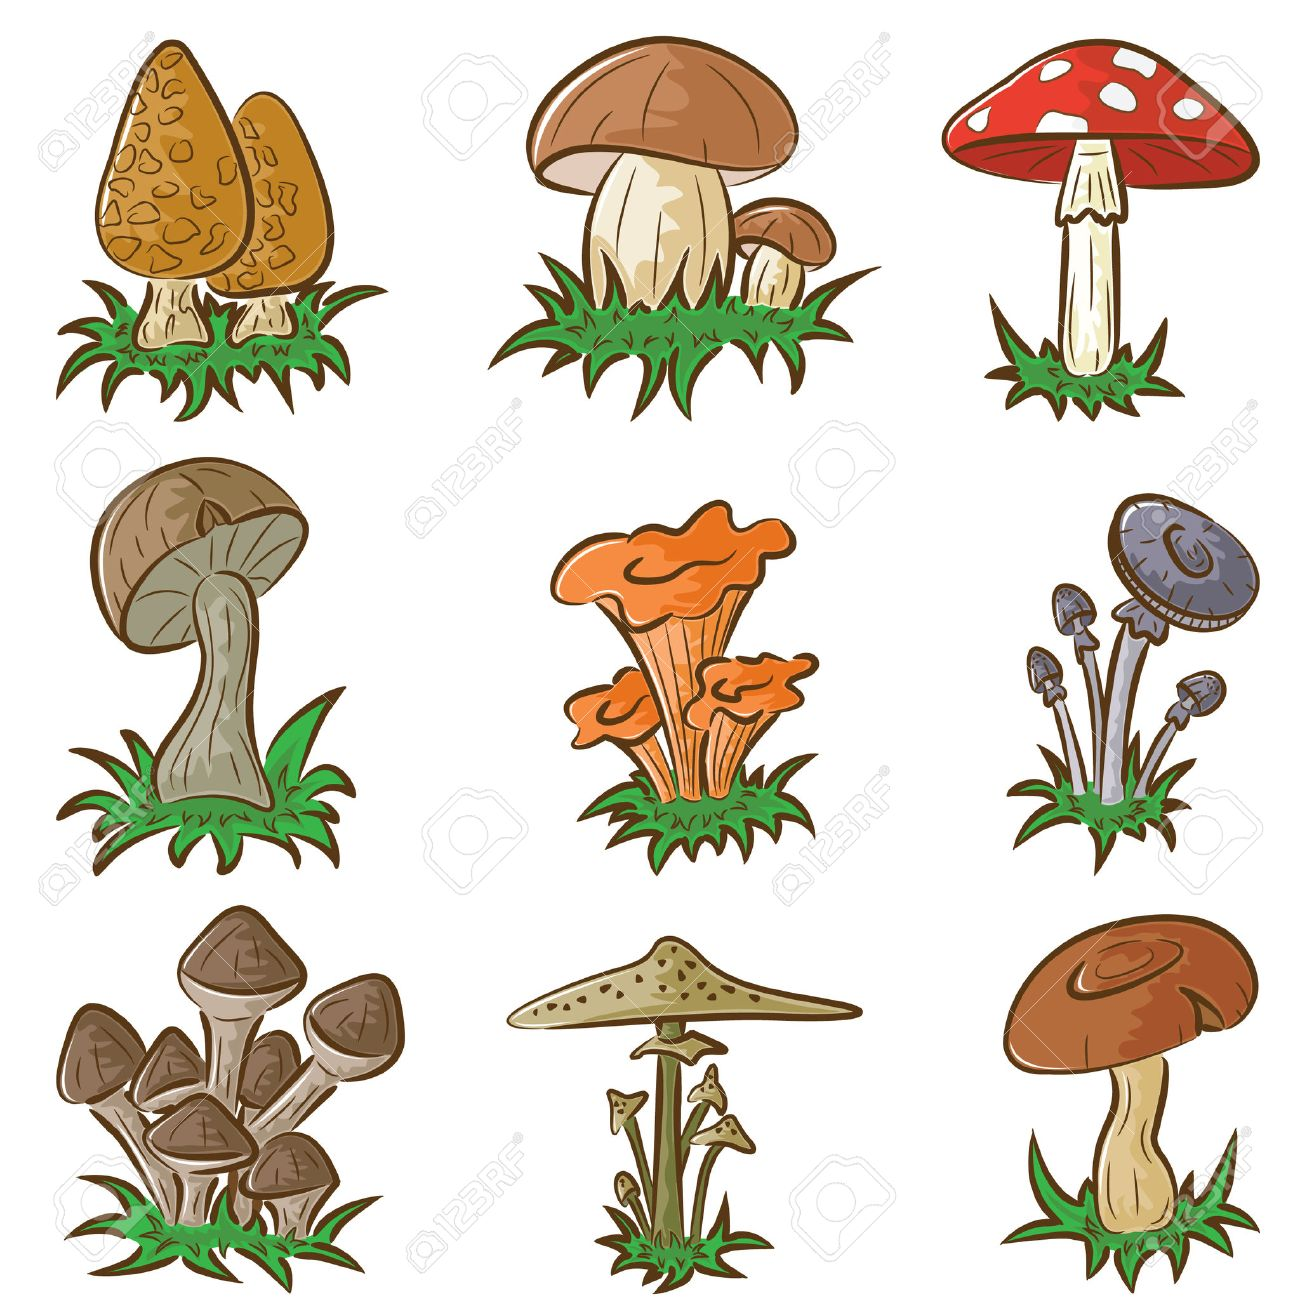 Color Set Of Different Cute Mushrooms Royalty Free Cliparts